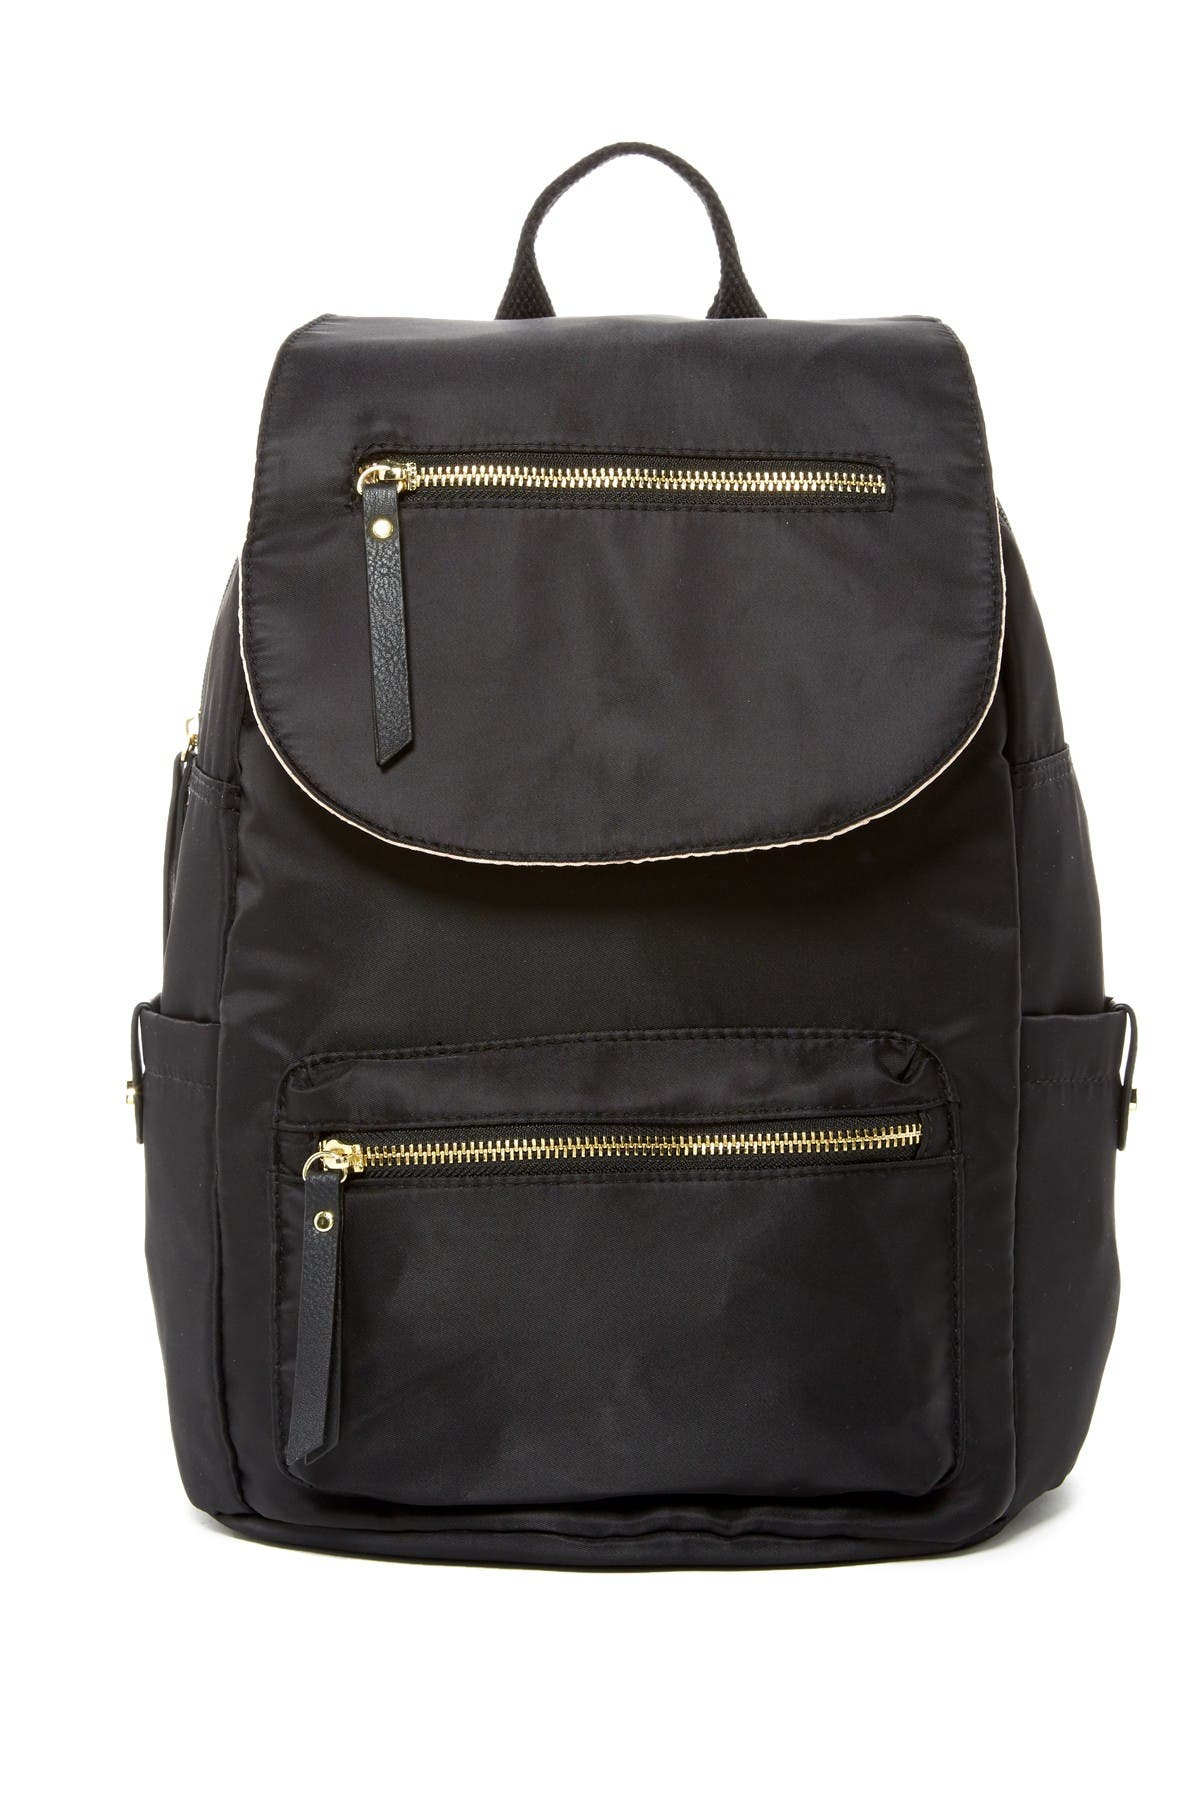 Image of Madden Girl Proper Flap Nylon Backpack